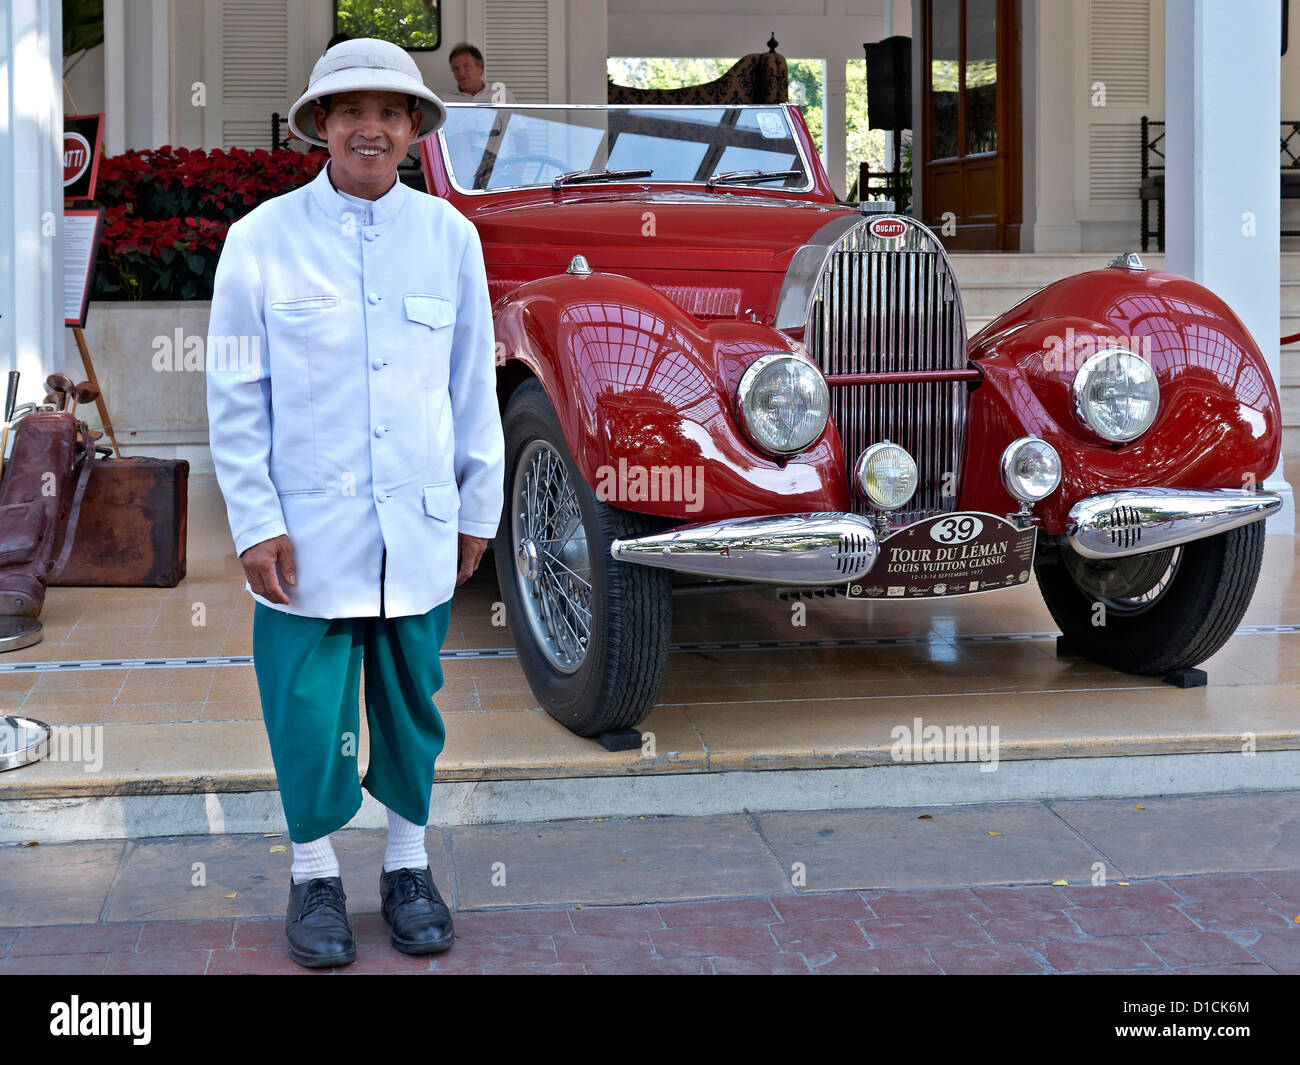 Bellboy at a Thailand hotel and a red Bugatti 1938 model type 57 veteran motor car. Thailand S. E. Asia - Stock Image